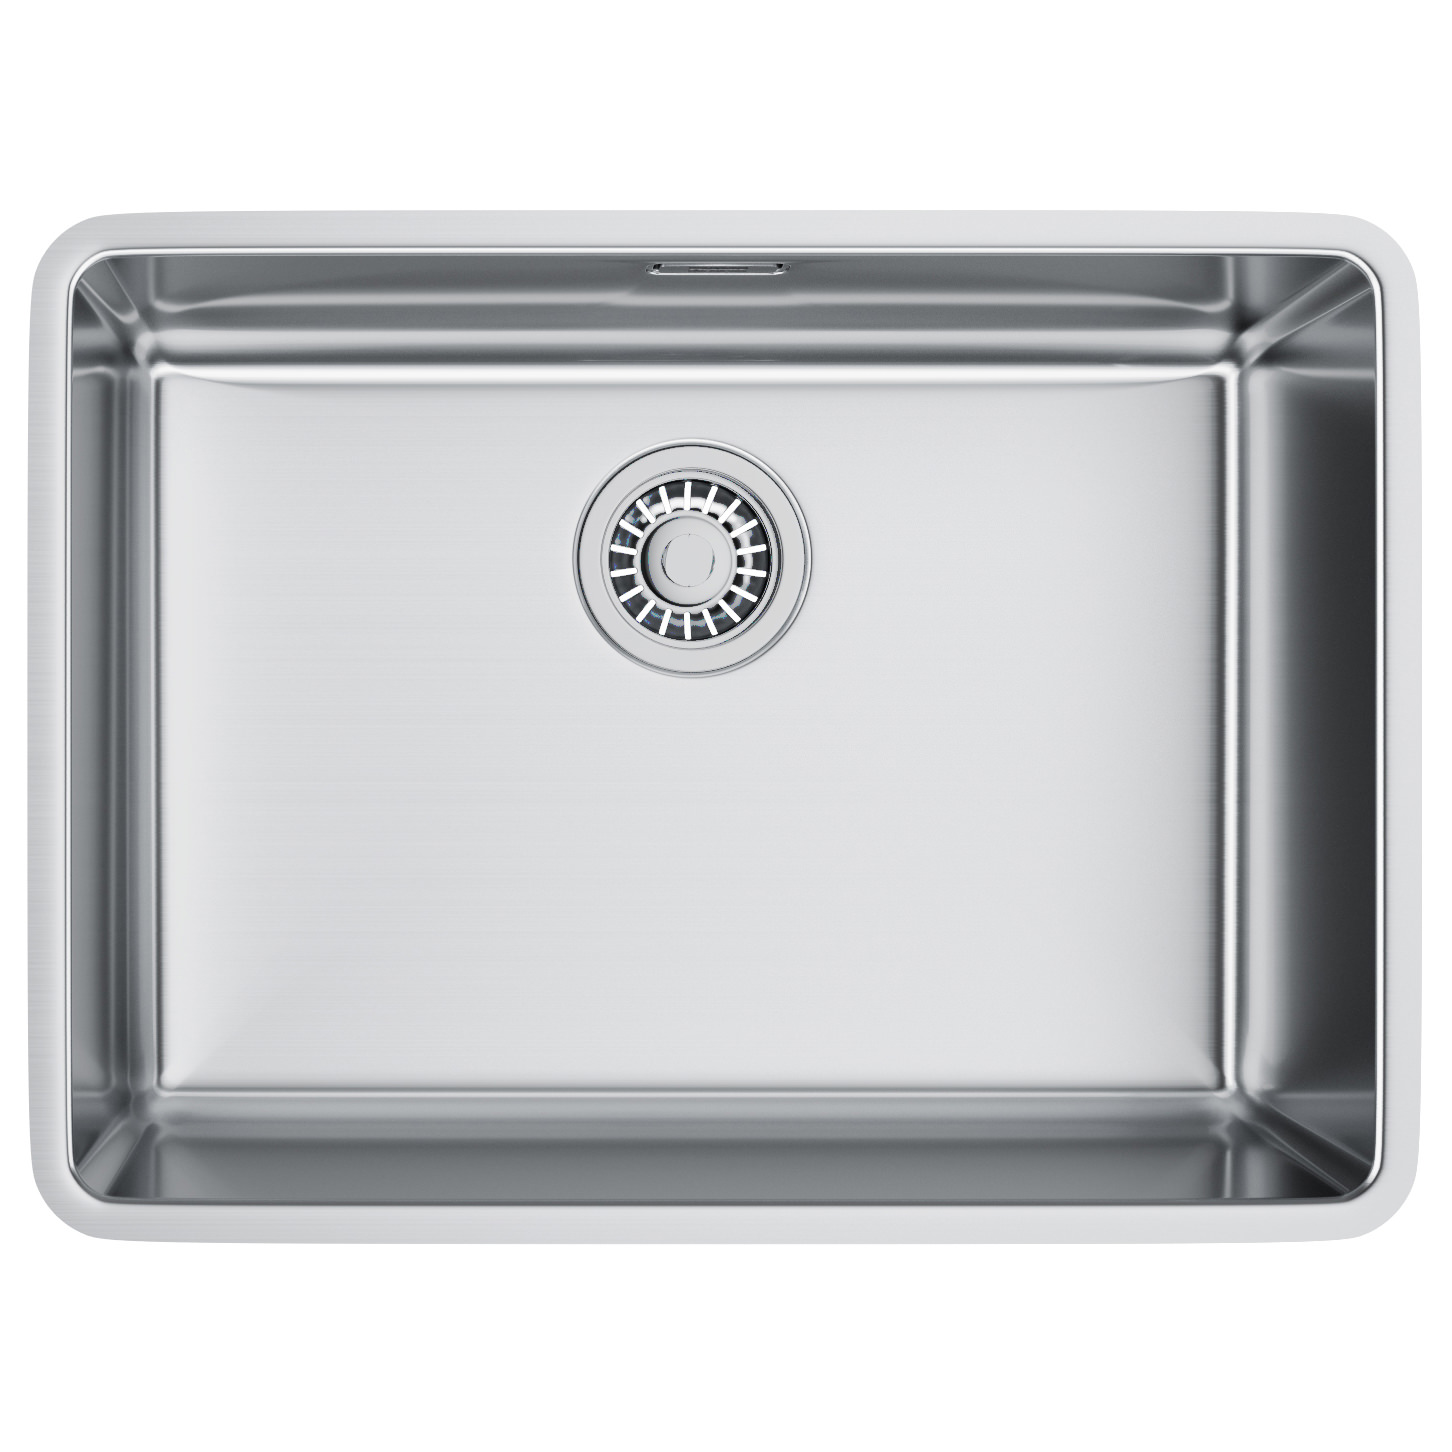 Franke Kitchen Sinks : Franke Kubus KBX 110 55 Stainless Steel Undermount Kitchen Sink ...